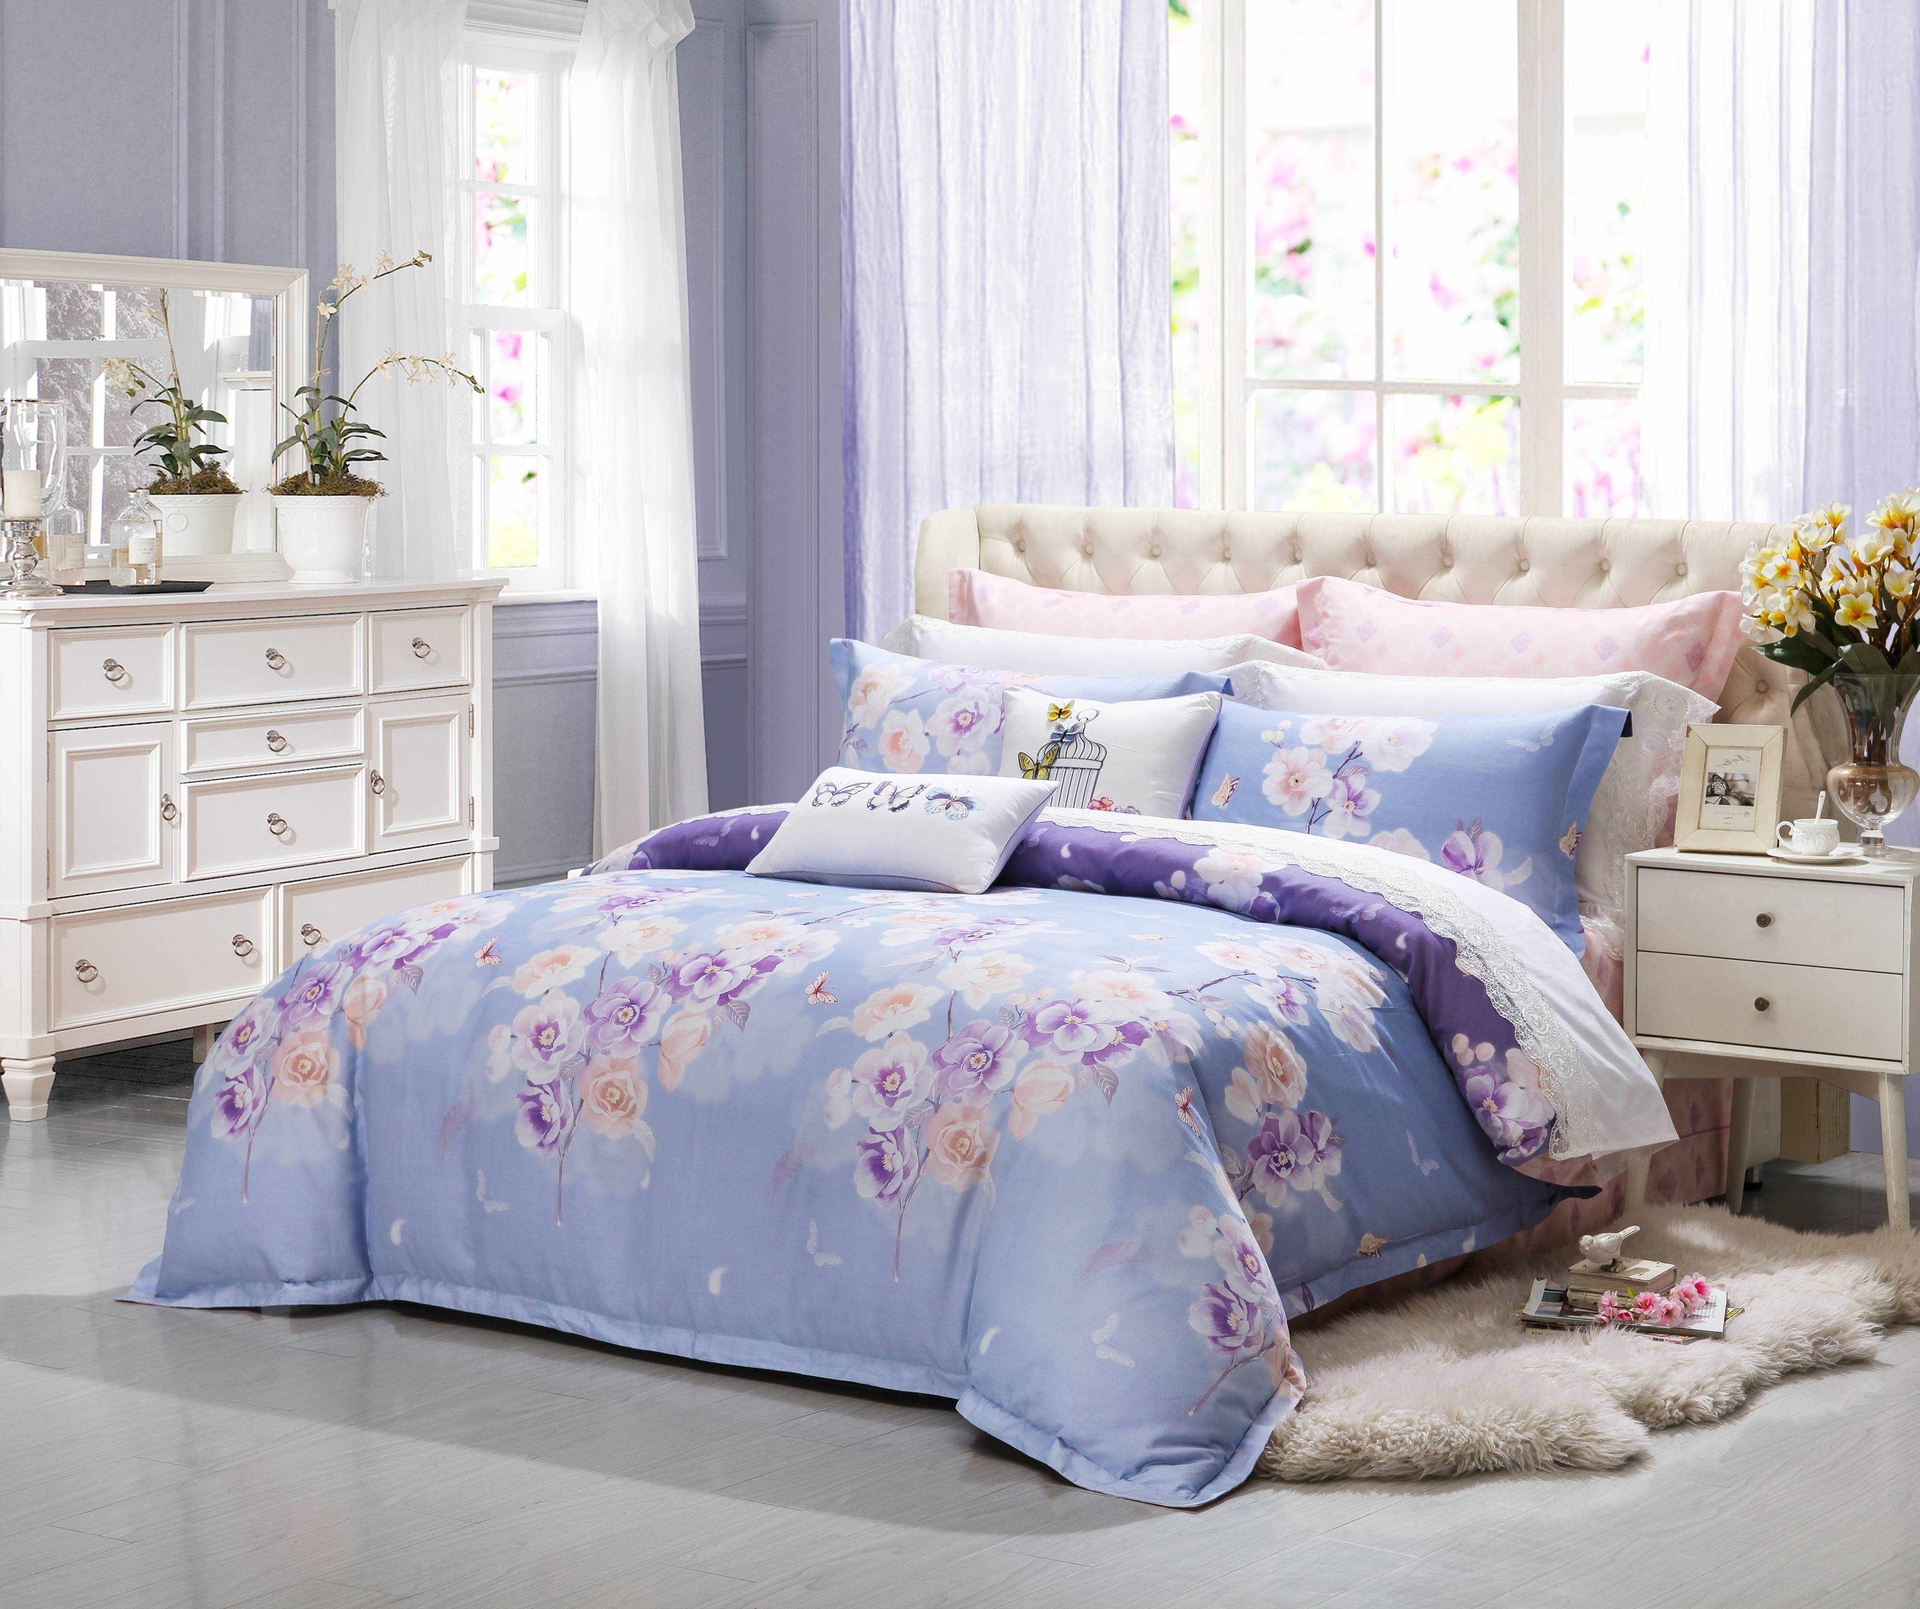 Floral Printed Brushed Cotton Bedding Set #6882